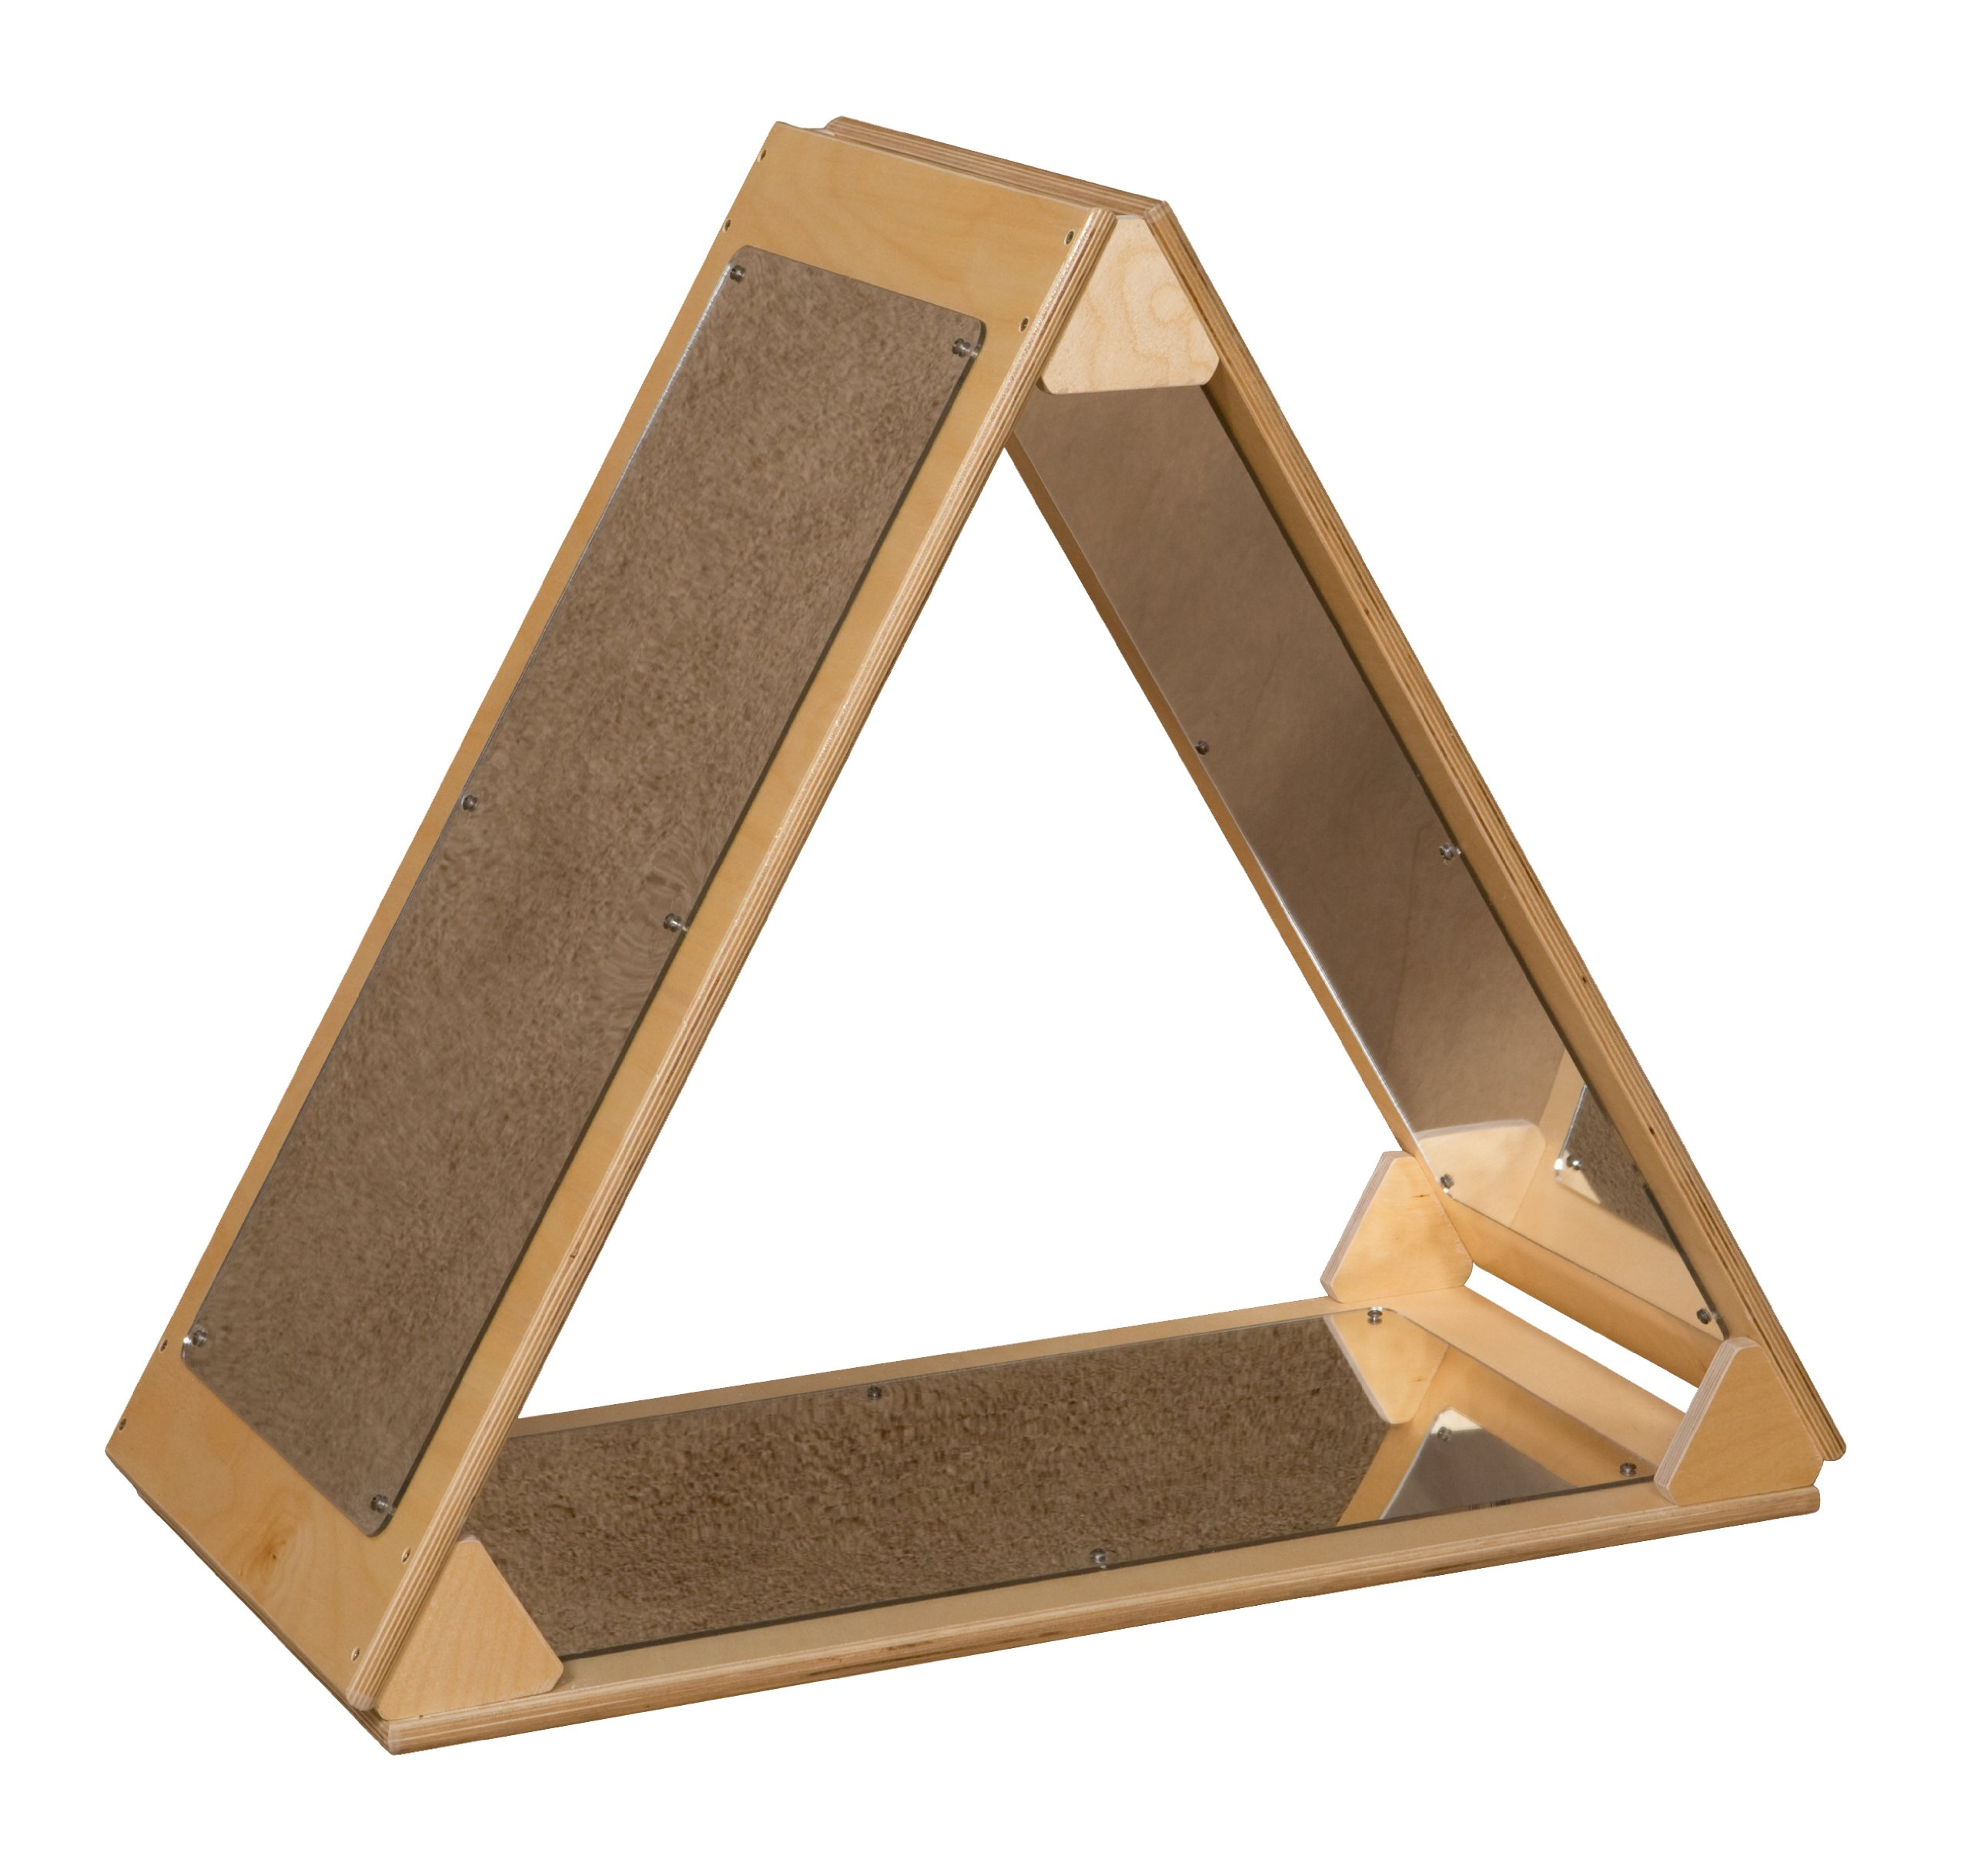 Wood Designs WD990251 Mirror Triangle